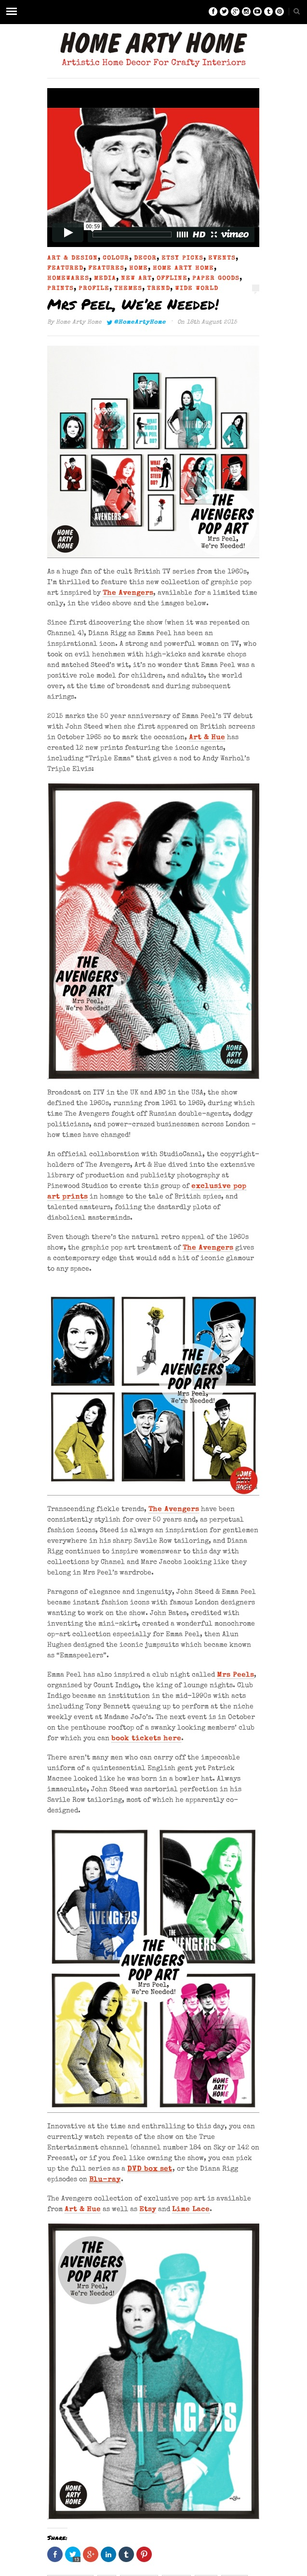 The Avengers Pop Art Home Arty Home